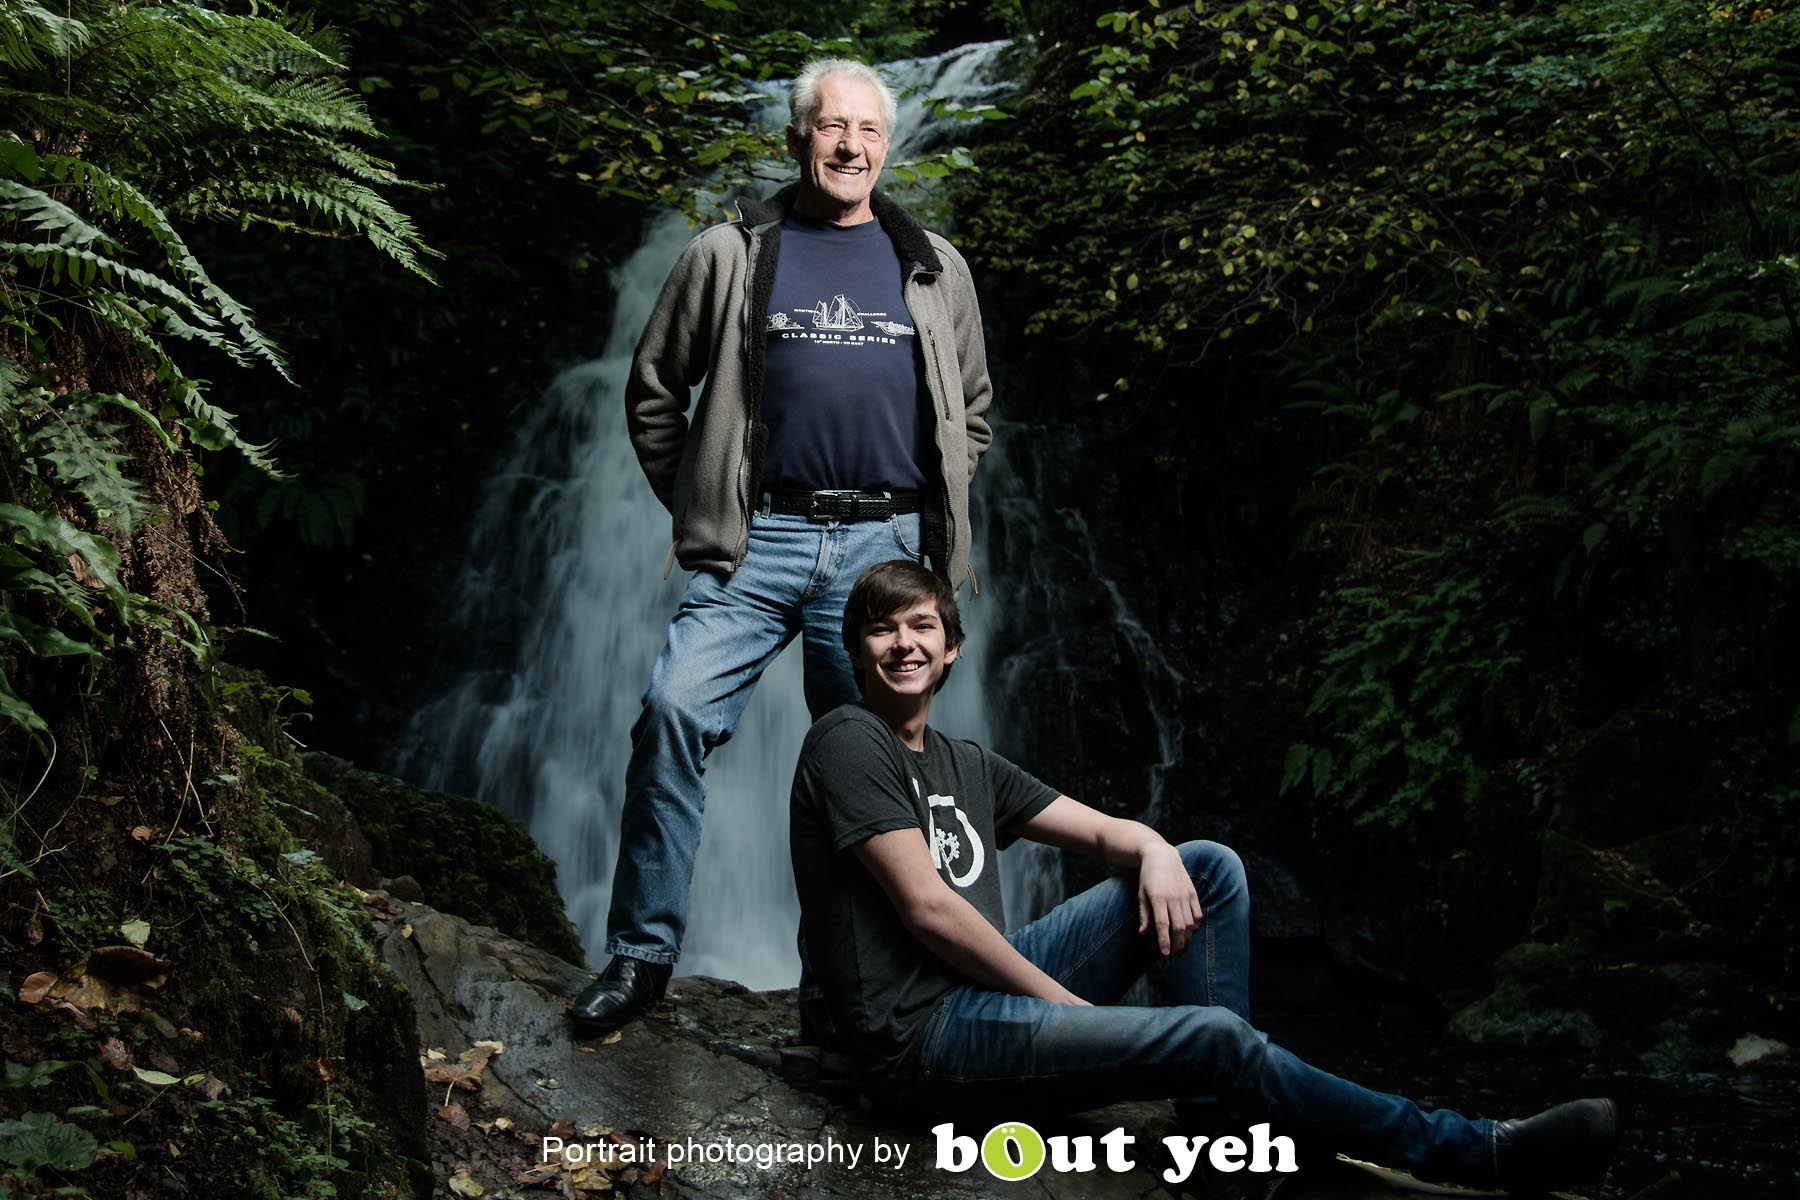 William and William, at Glenoe Waterfall, Northern Ireland - photo 8996.